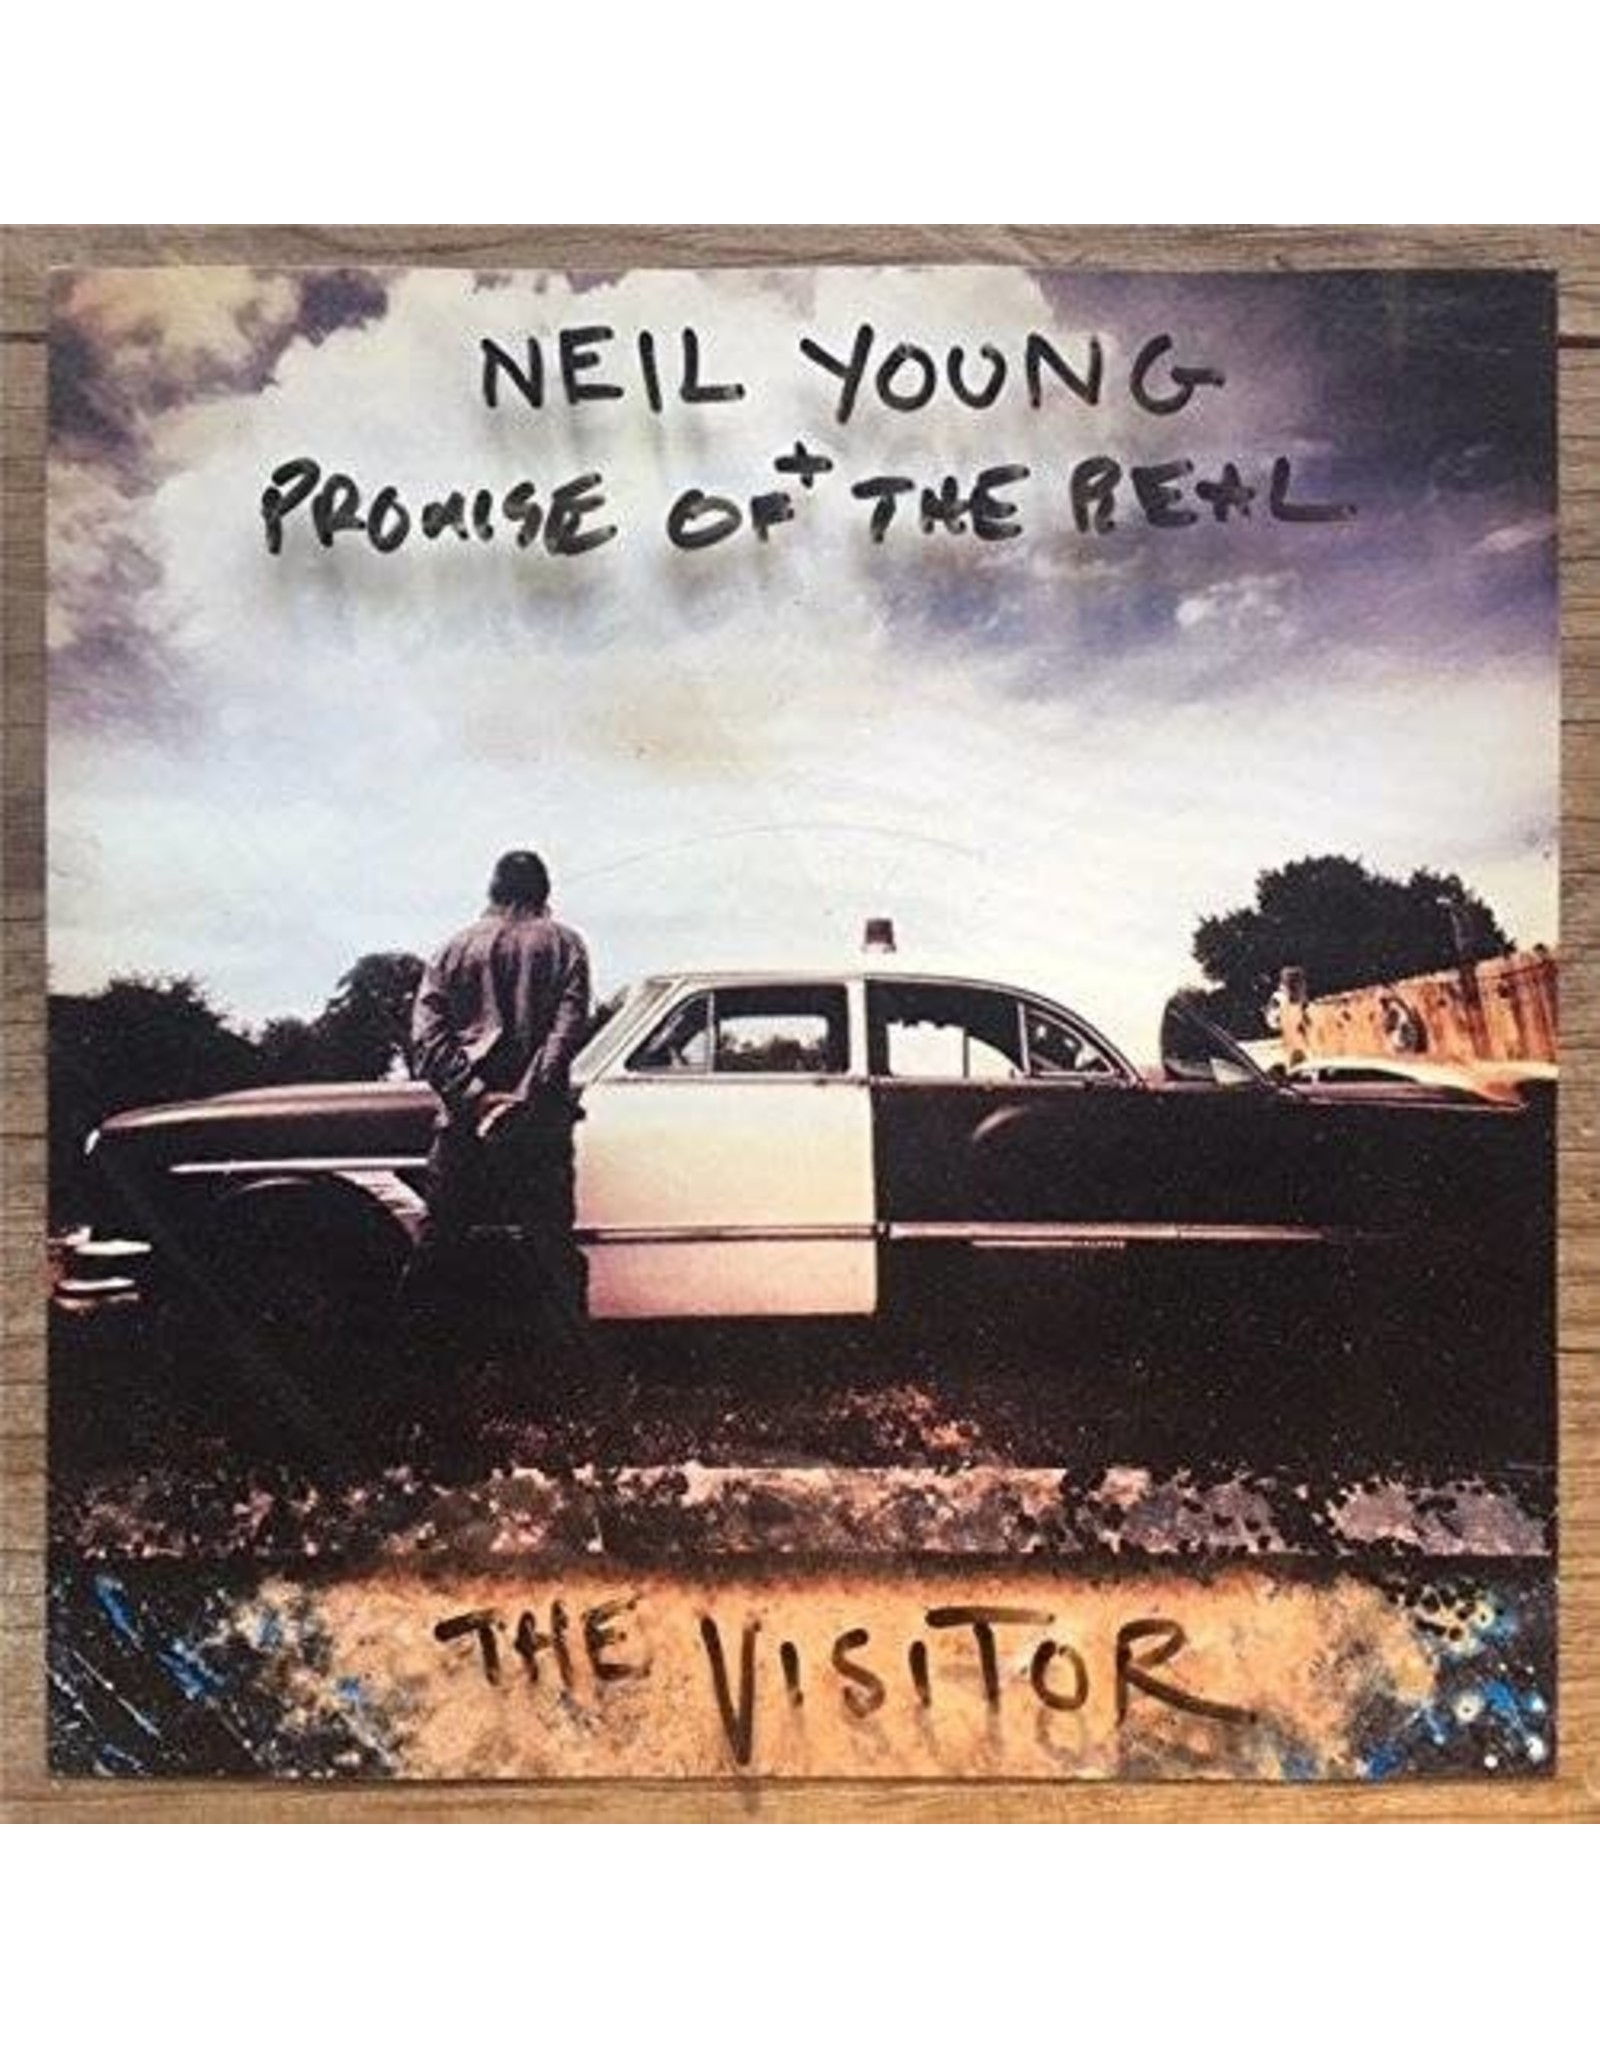 Young, Neil - The Visitor CD